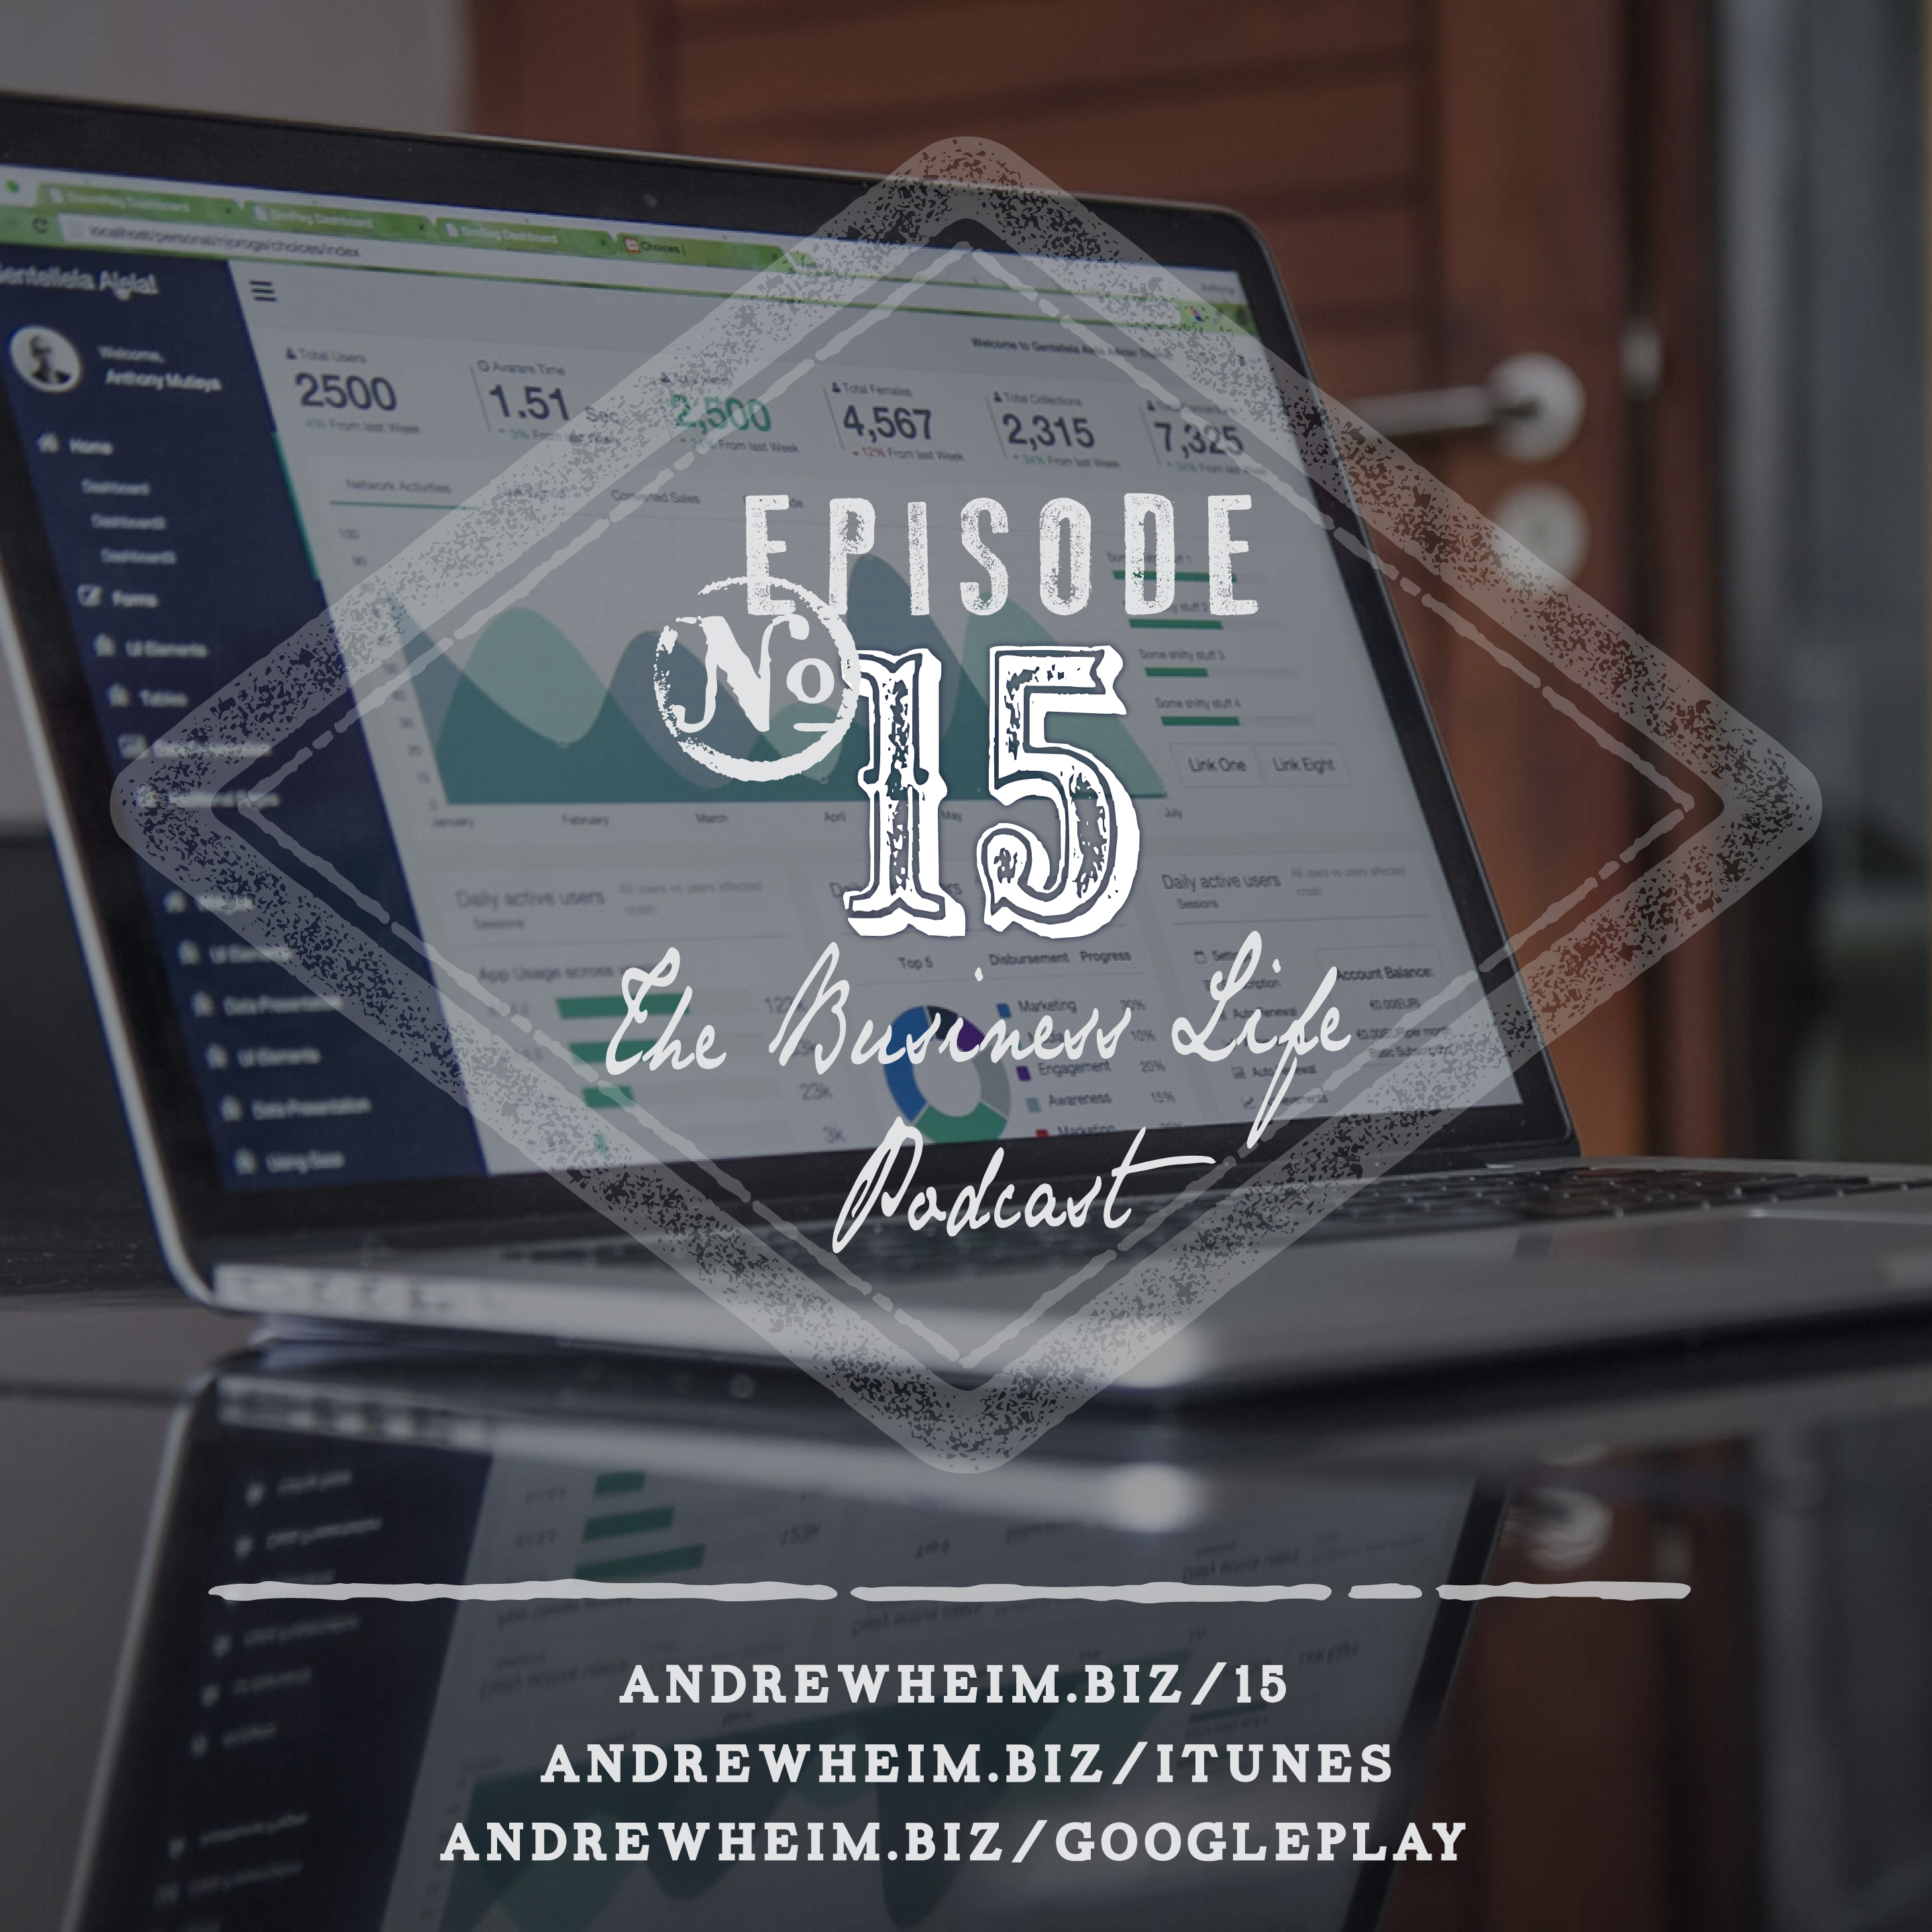 The Business Life Podcast #015 - Simplifying business and increasing profitability